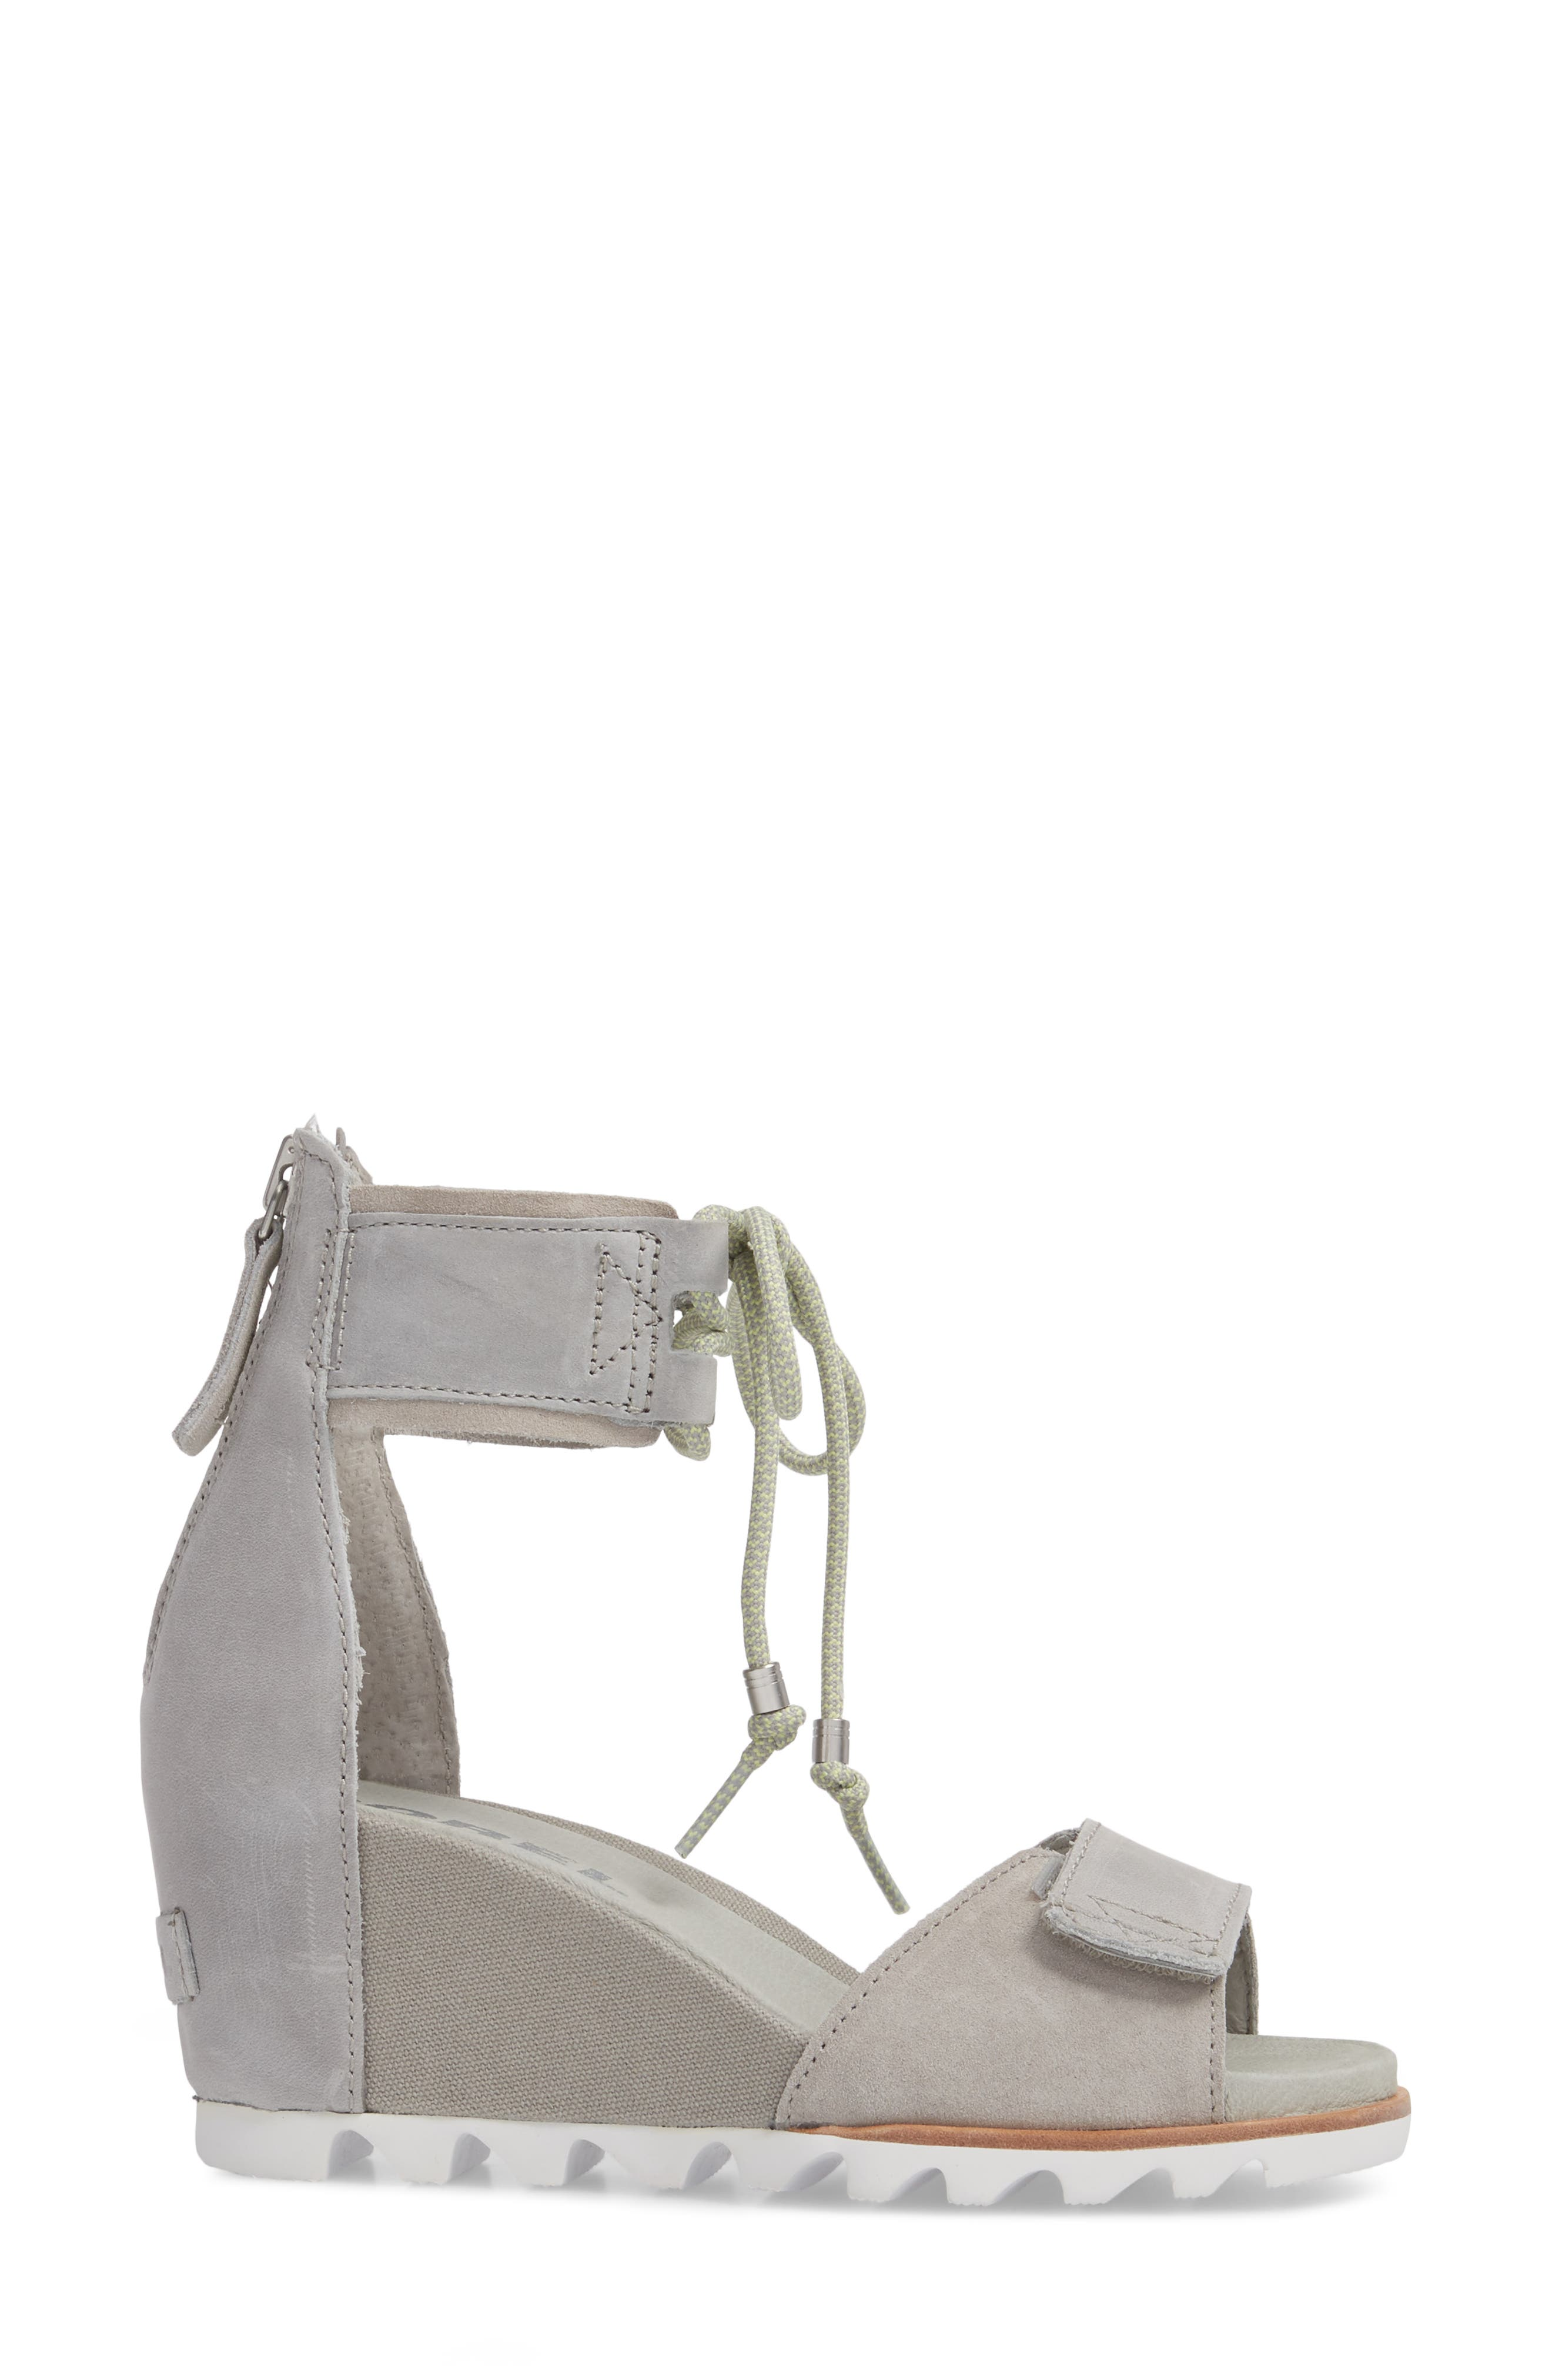 Joanie Cuff Wedge Sandal,                             Alternate thumbnail 3, color,                             Dove